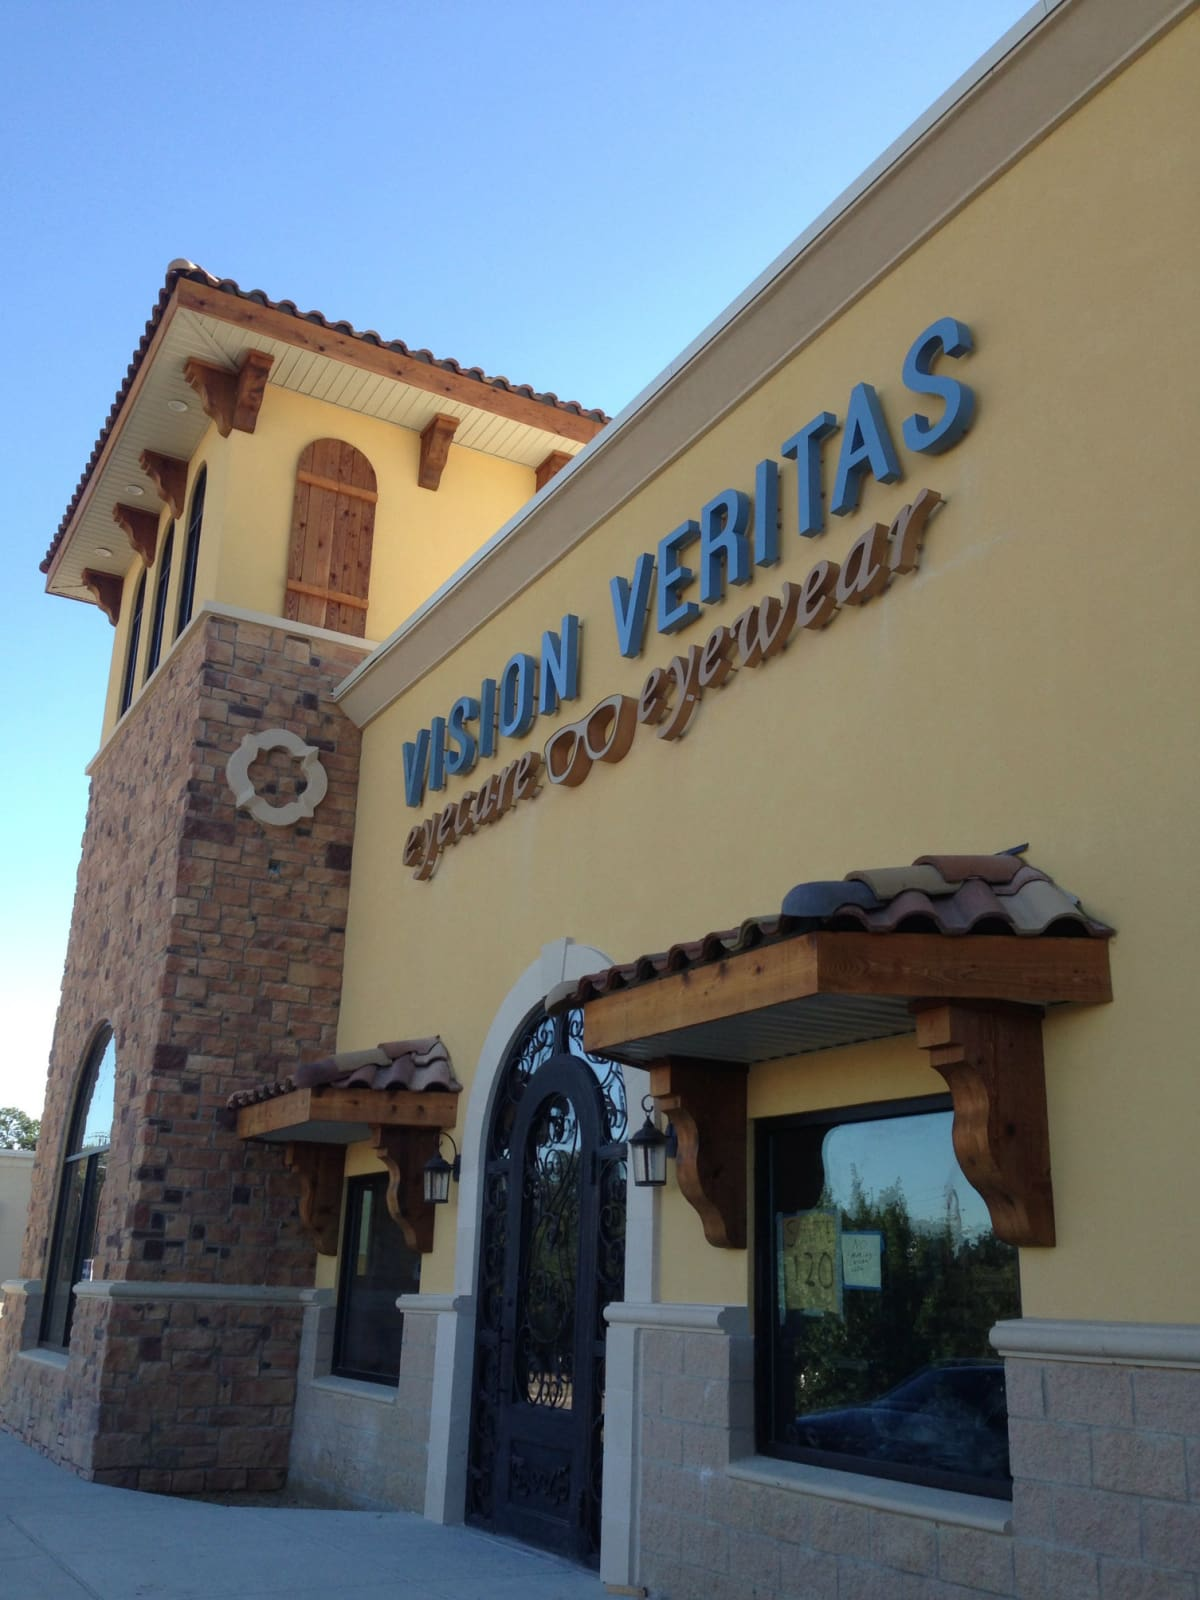 Vision Veritas in North Dallas